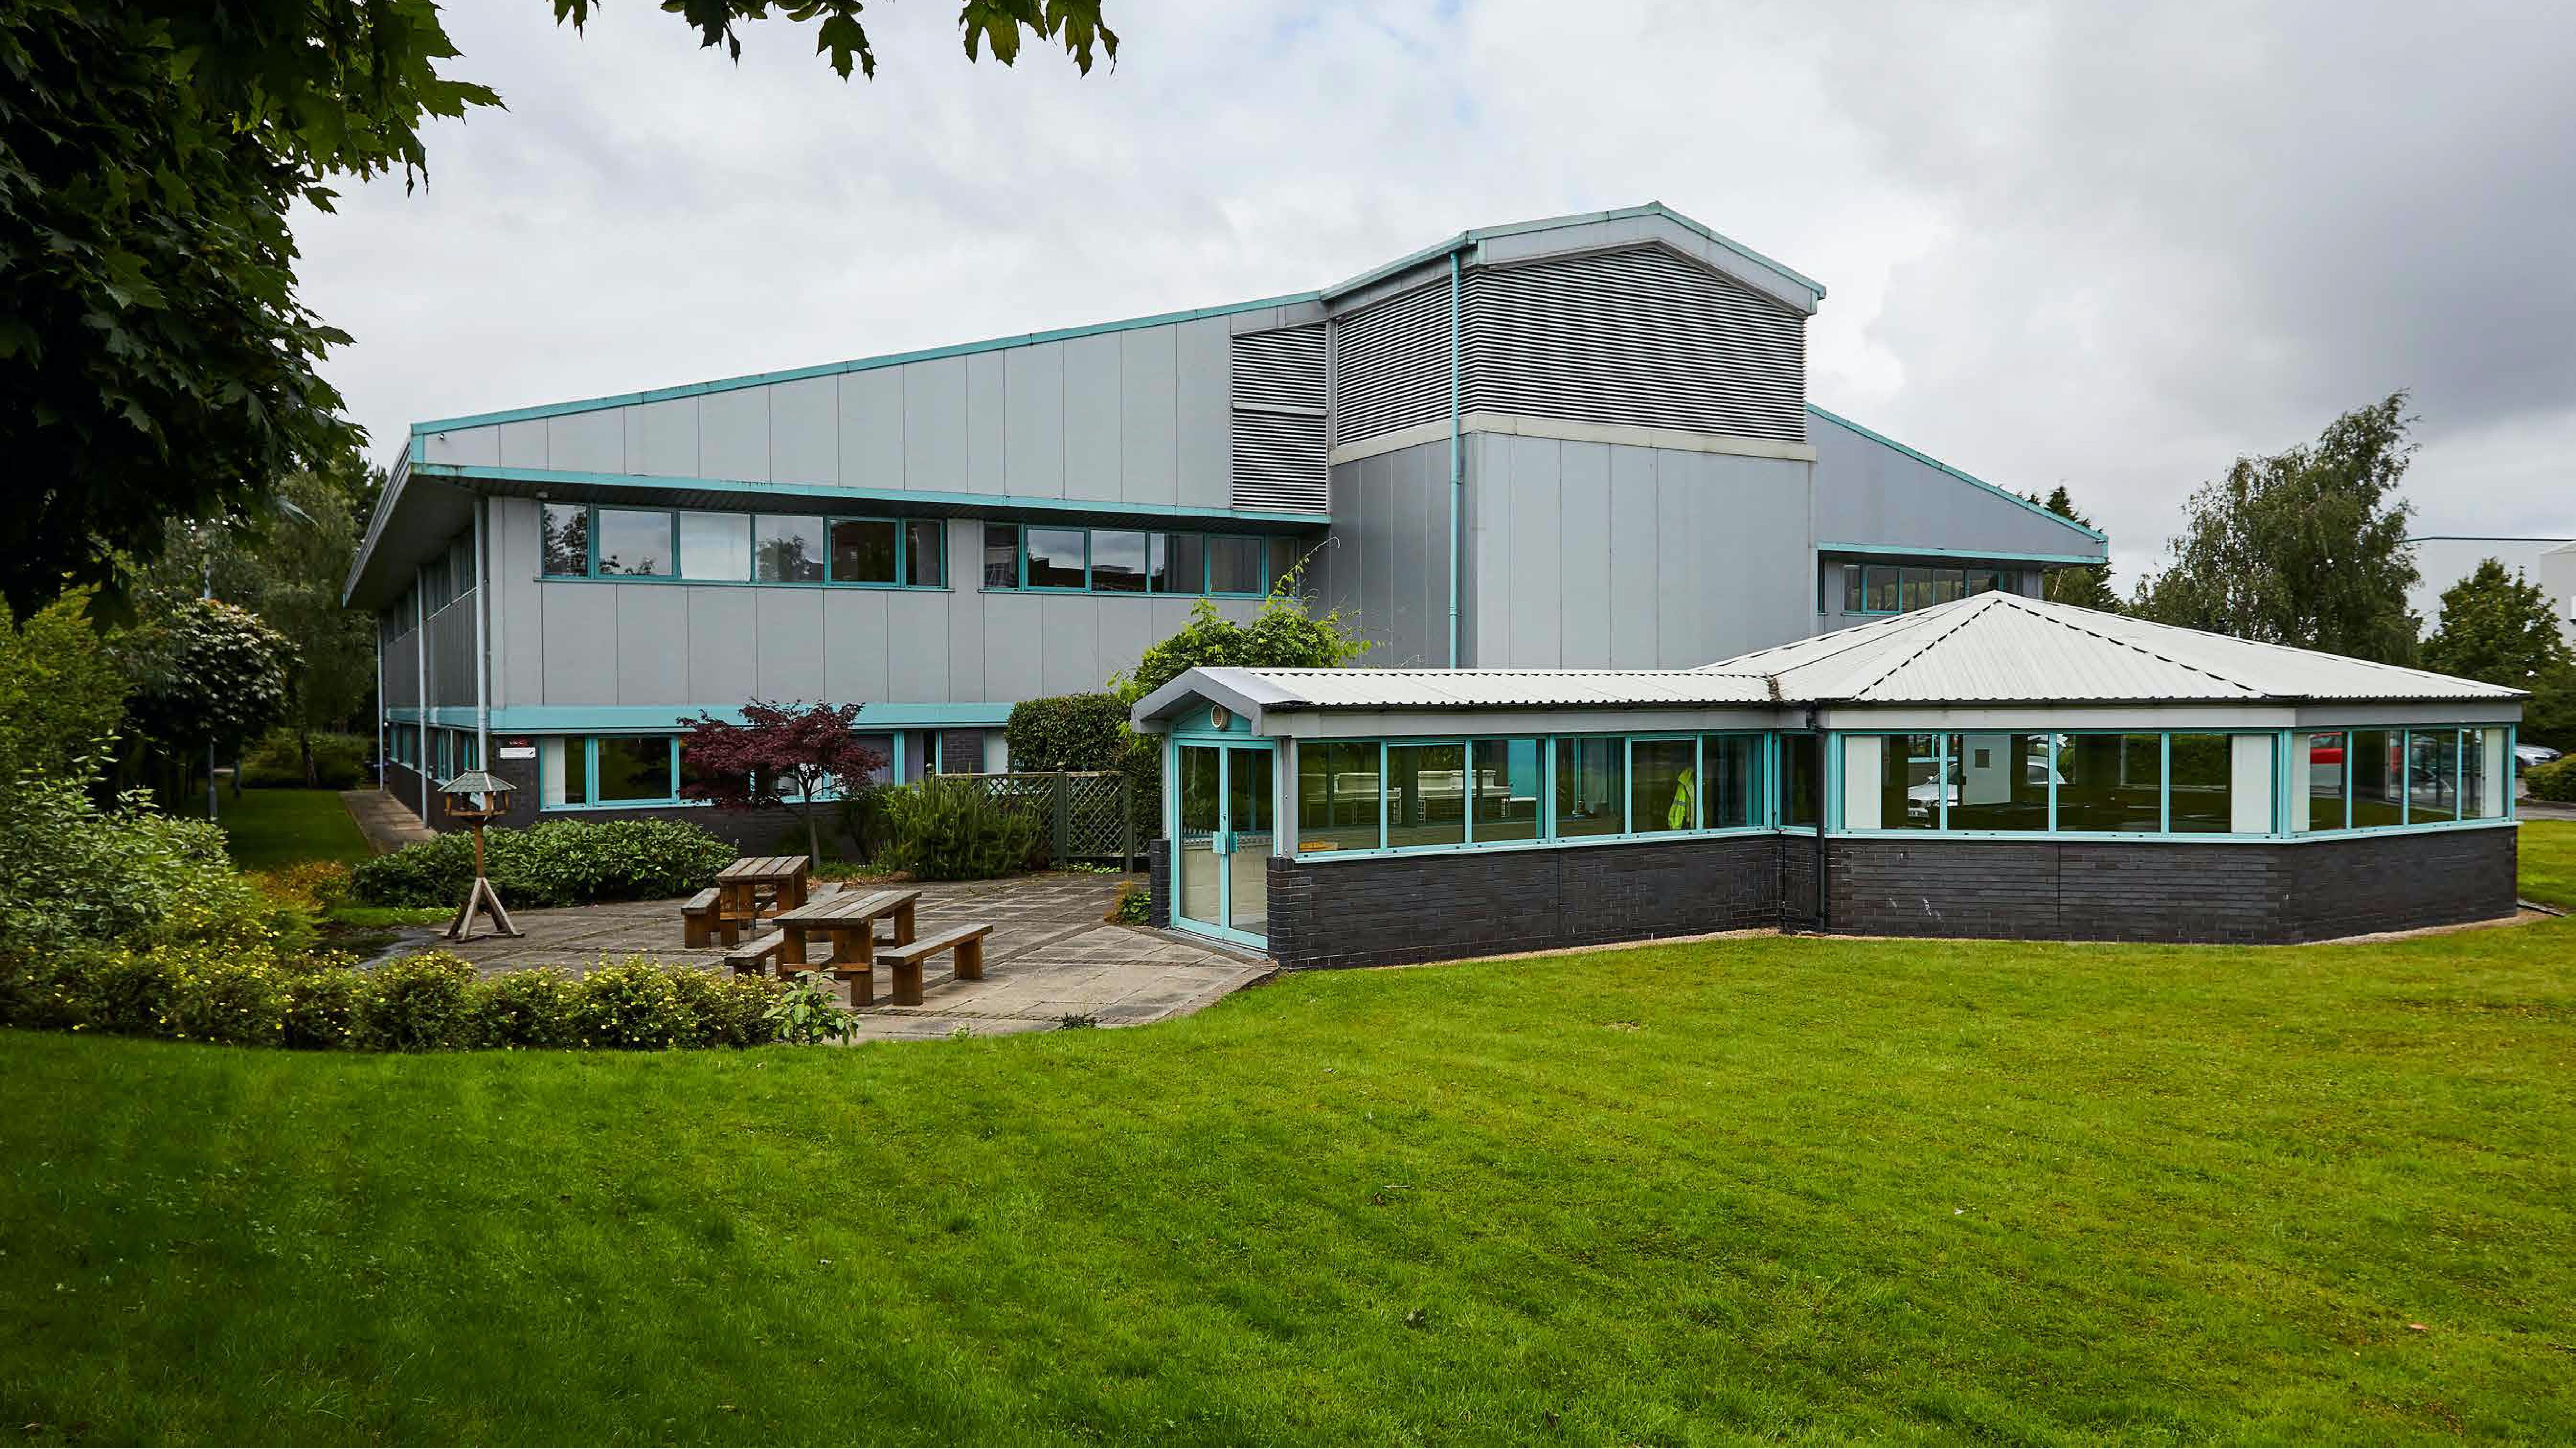 Maginus  | Roundthorn Industrial Estate, Floats Road, Wythenshaw, Office To Let - Magnius - Image 6-01.jpg